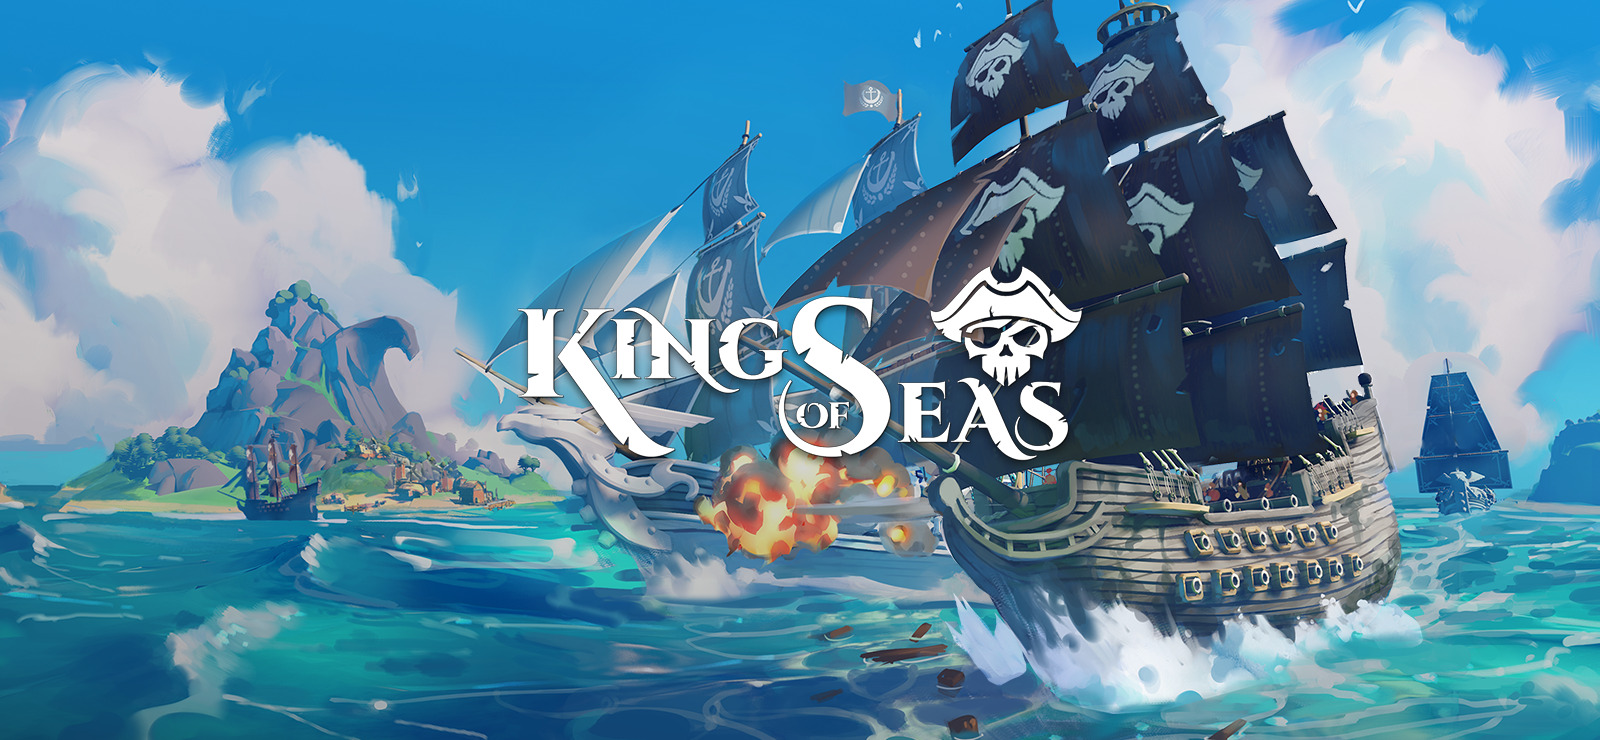 King of Seas Review